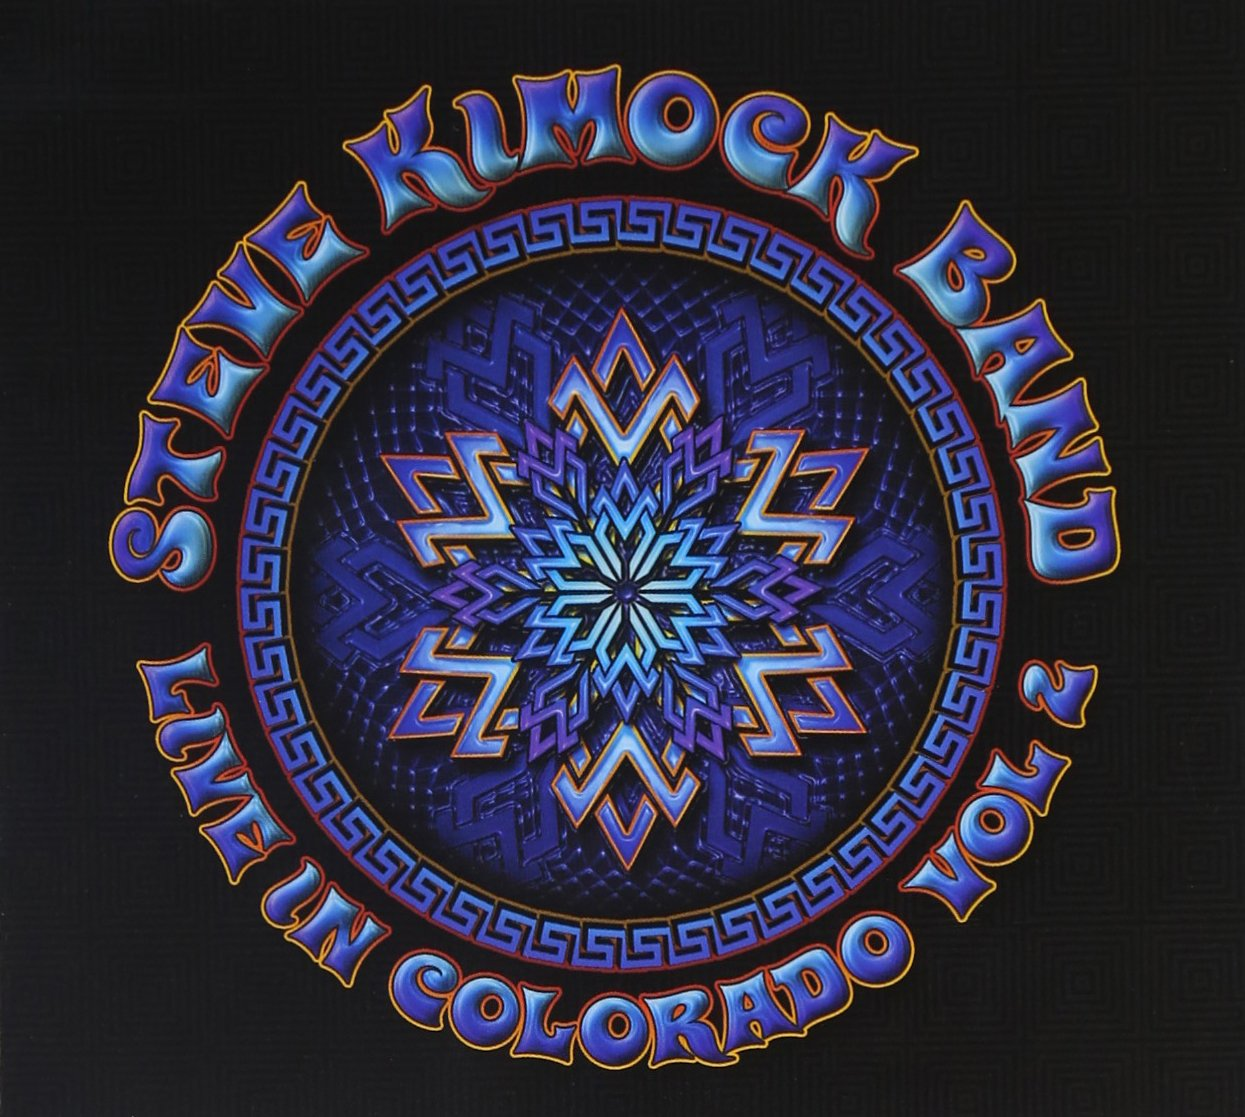 Live In Colorado, Vol. 2 by Steve Kimock